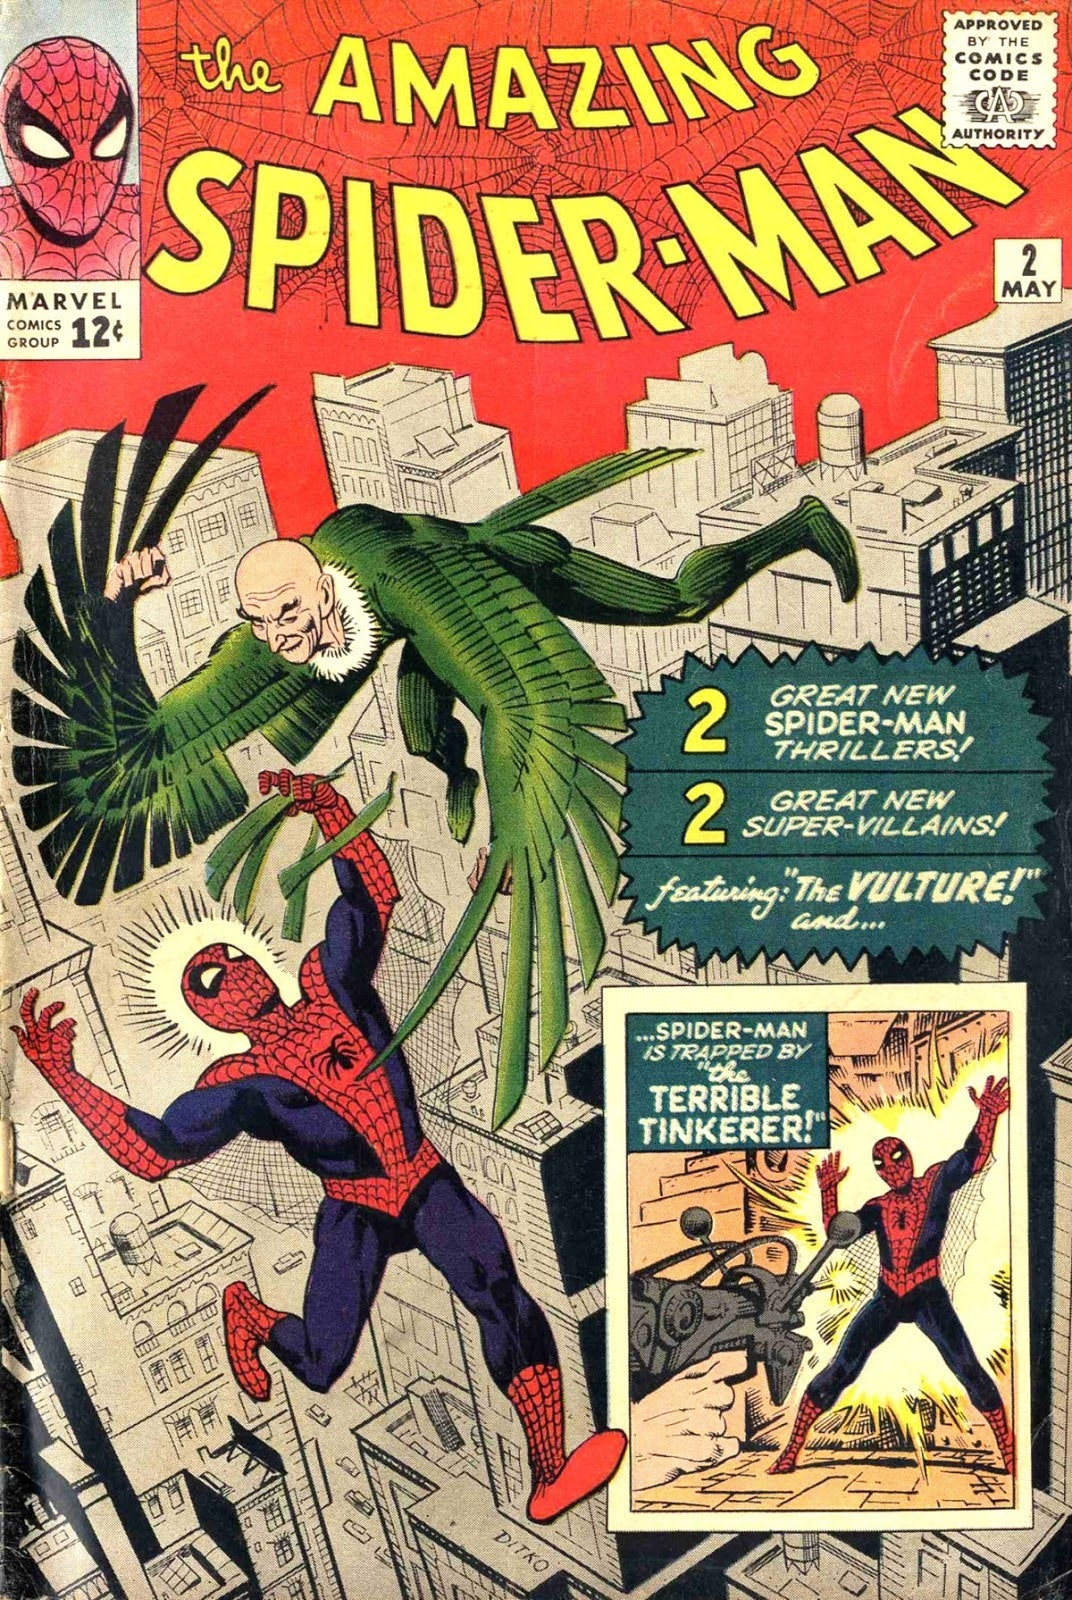 Spider-Man Vulture